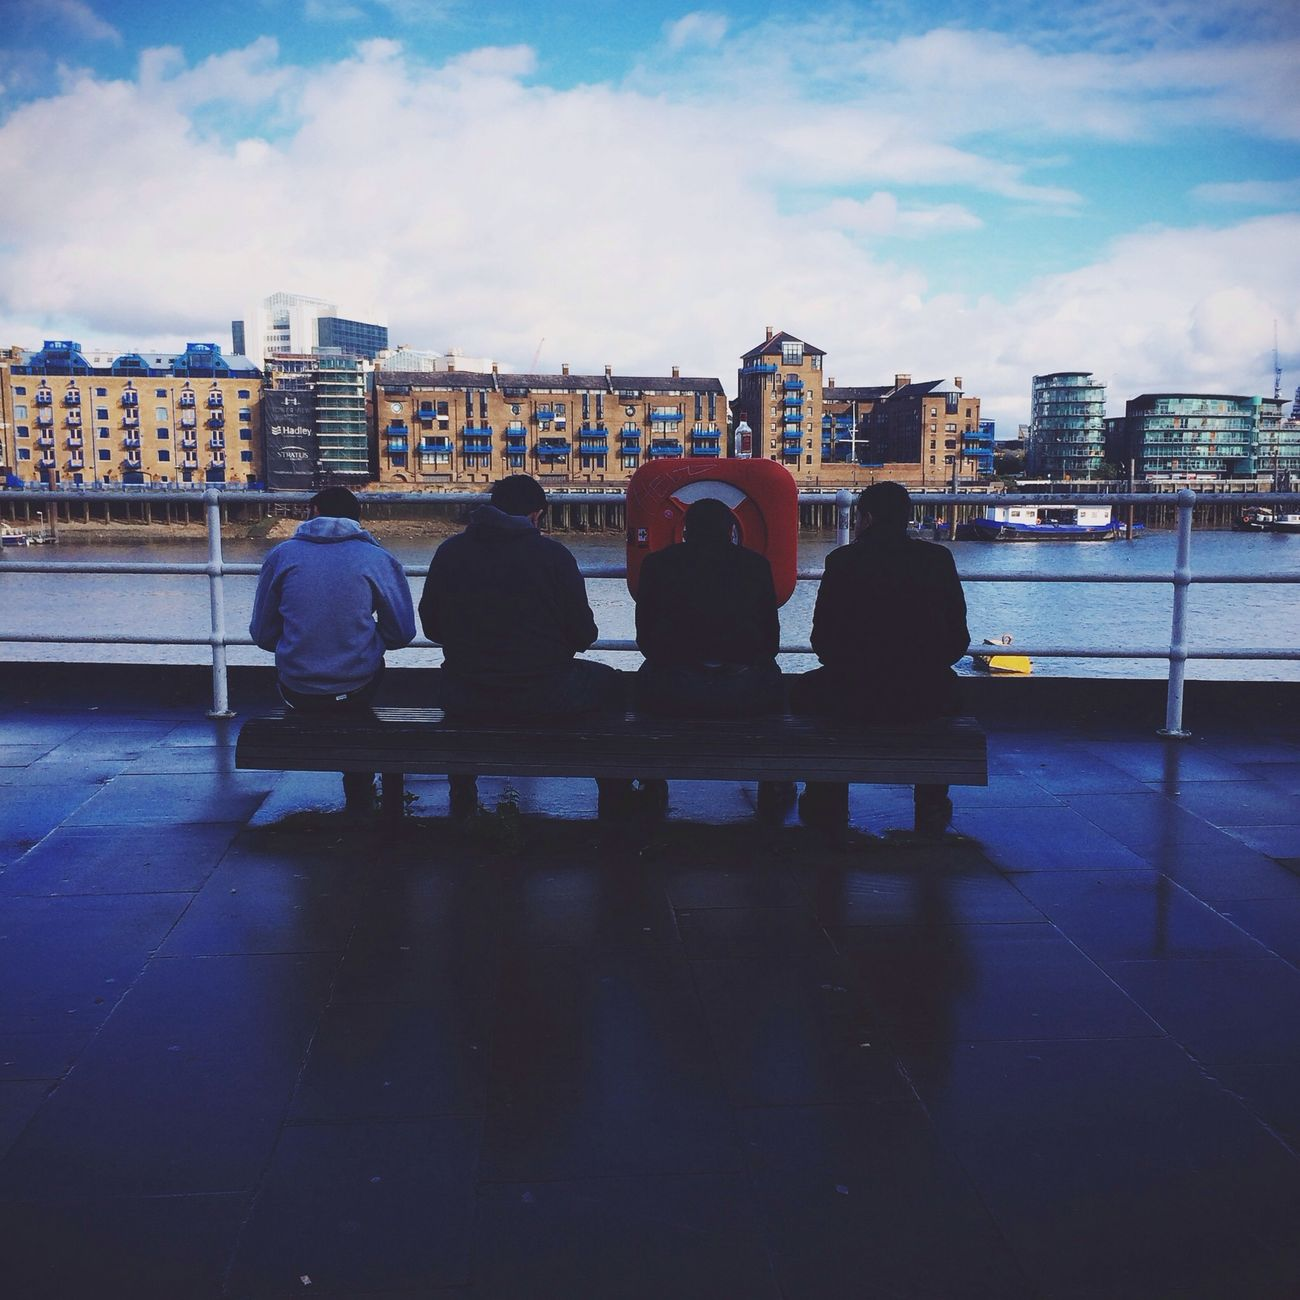 // Sitting by the dock of the bay // AMPt - Street Candid Friends Chilling